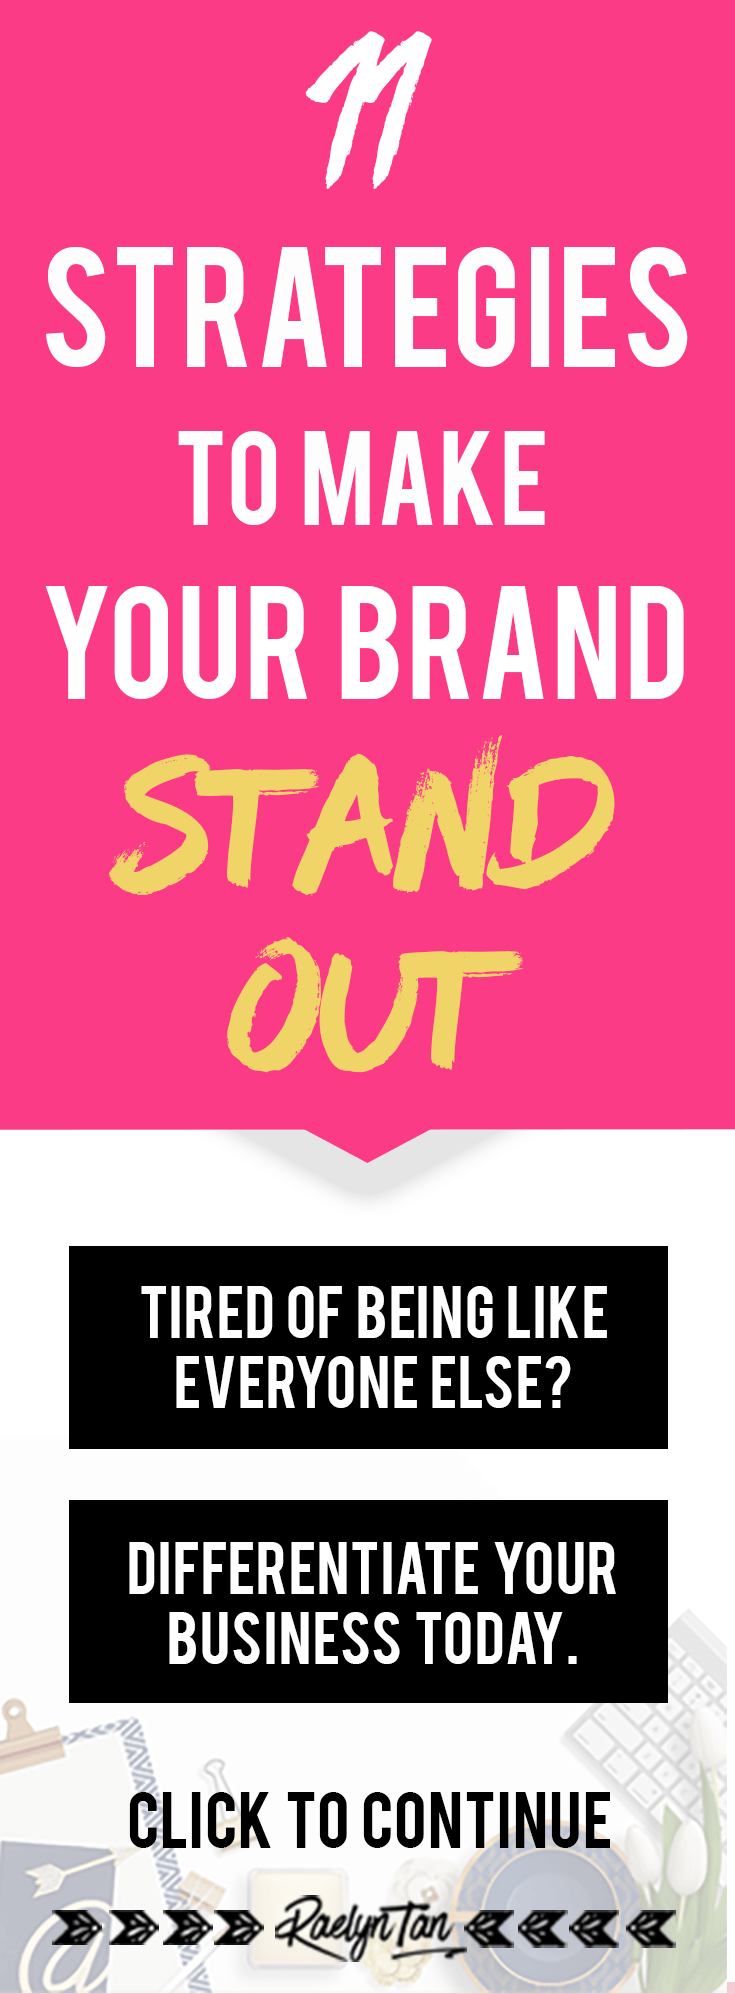 How to make your brand stand out from the noisy crowd: 11 awesome blogging tips for any online blog business that wants to differentiate itself and get noticed.